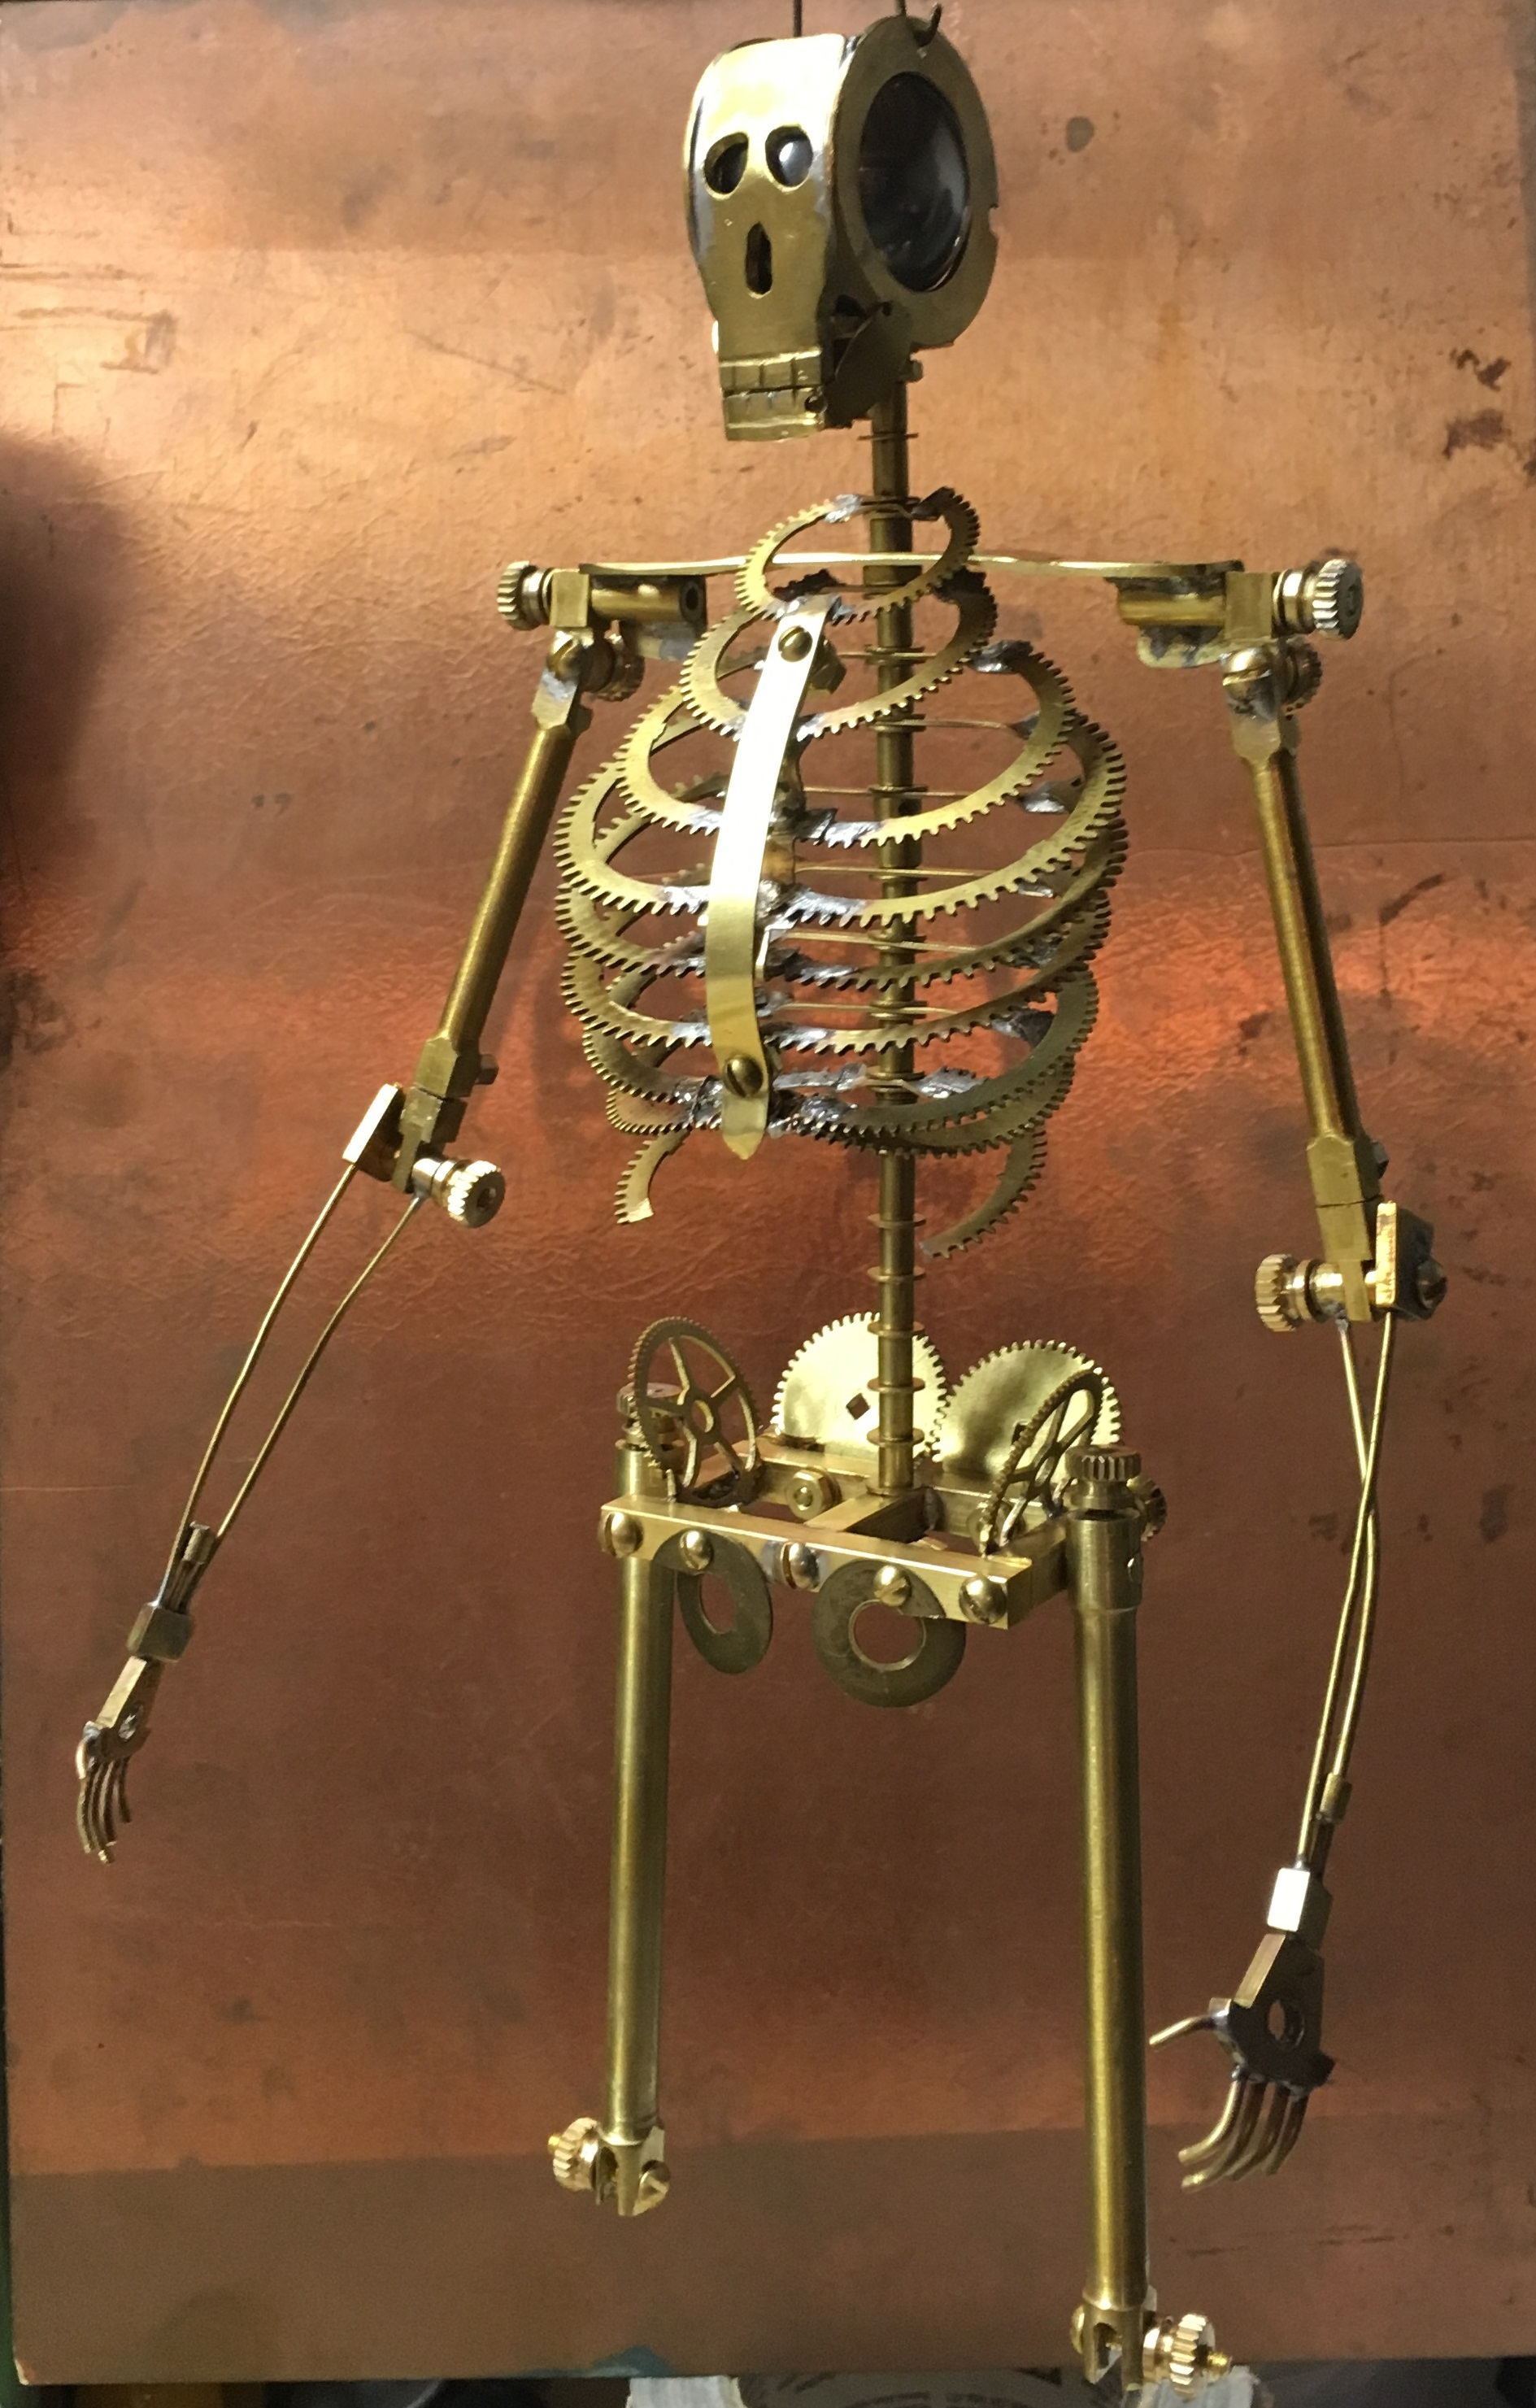 18 Skeleton with hips